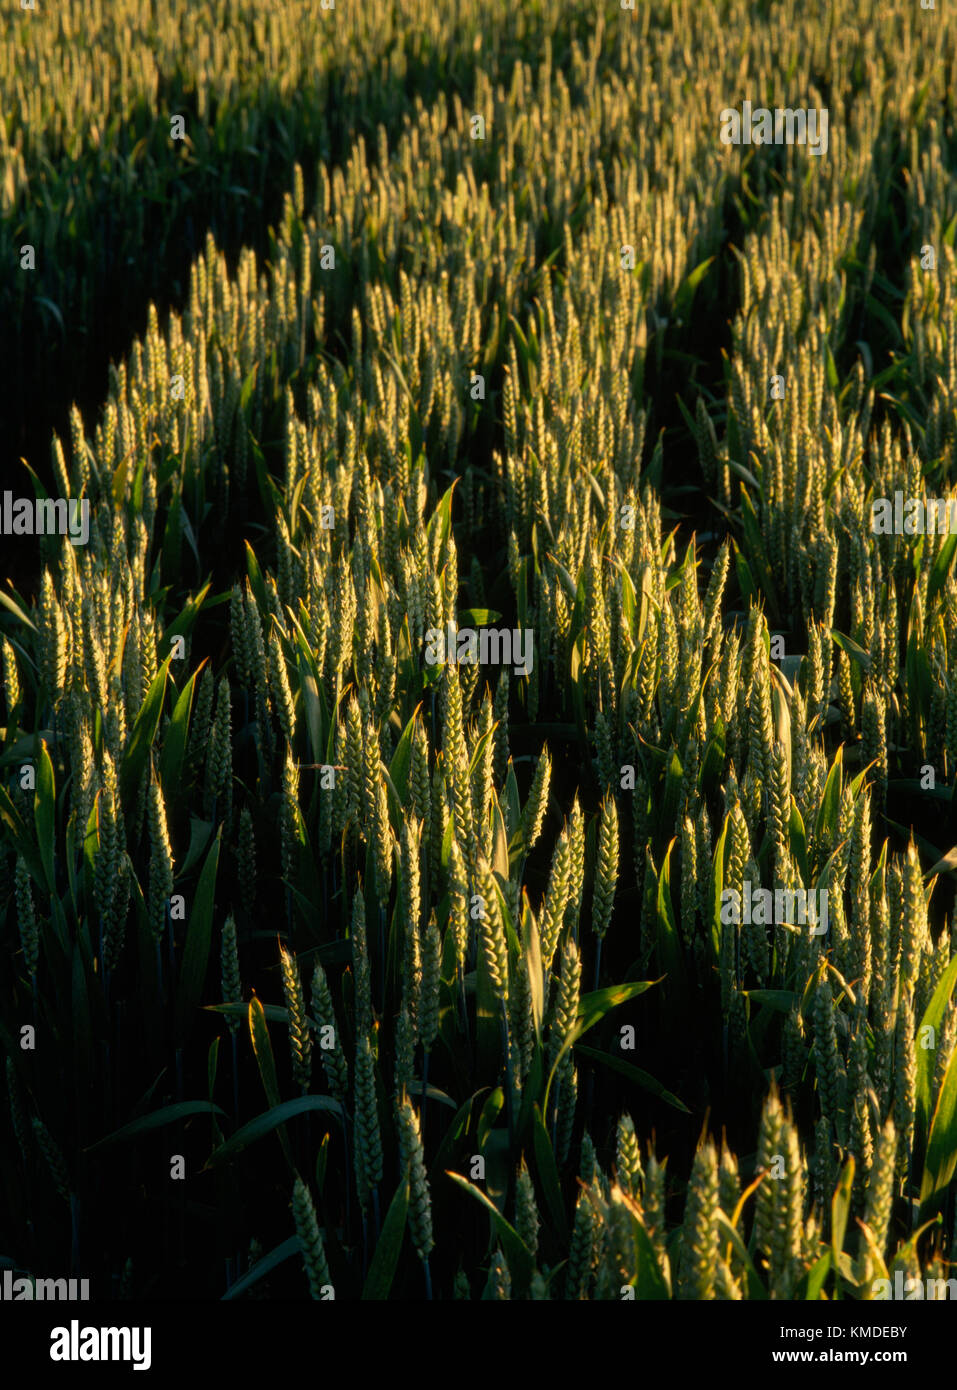 Curved rows of ripening wheat on the edge of a field lit by low level sunshine. Pembrokeshire, South Wales, UK - Stock Image